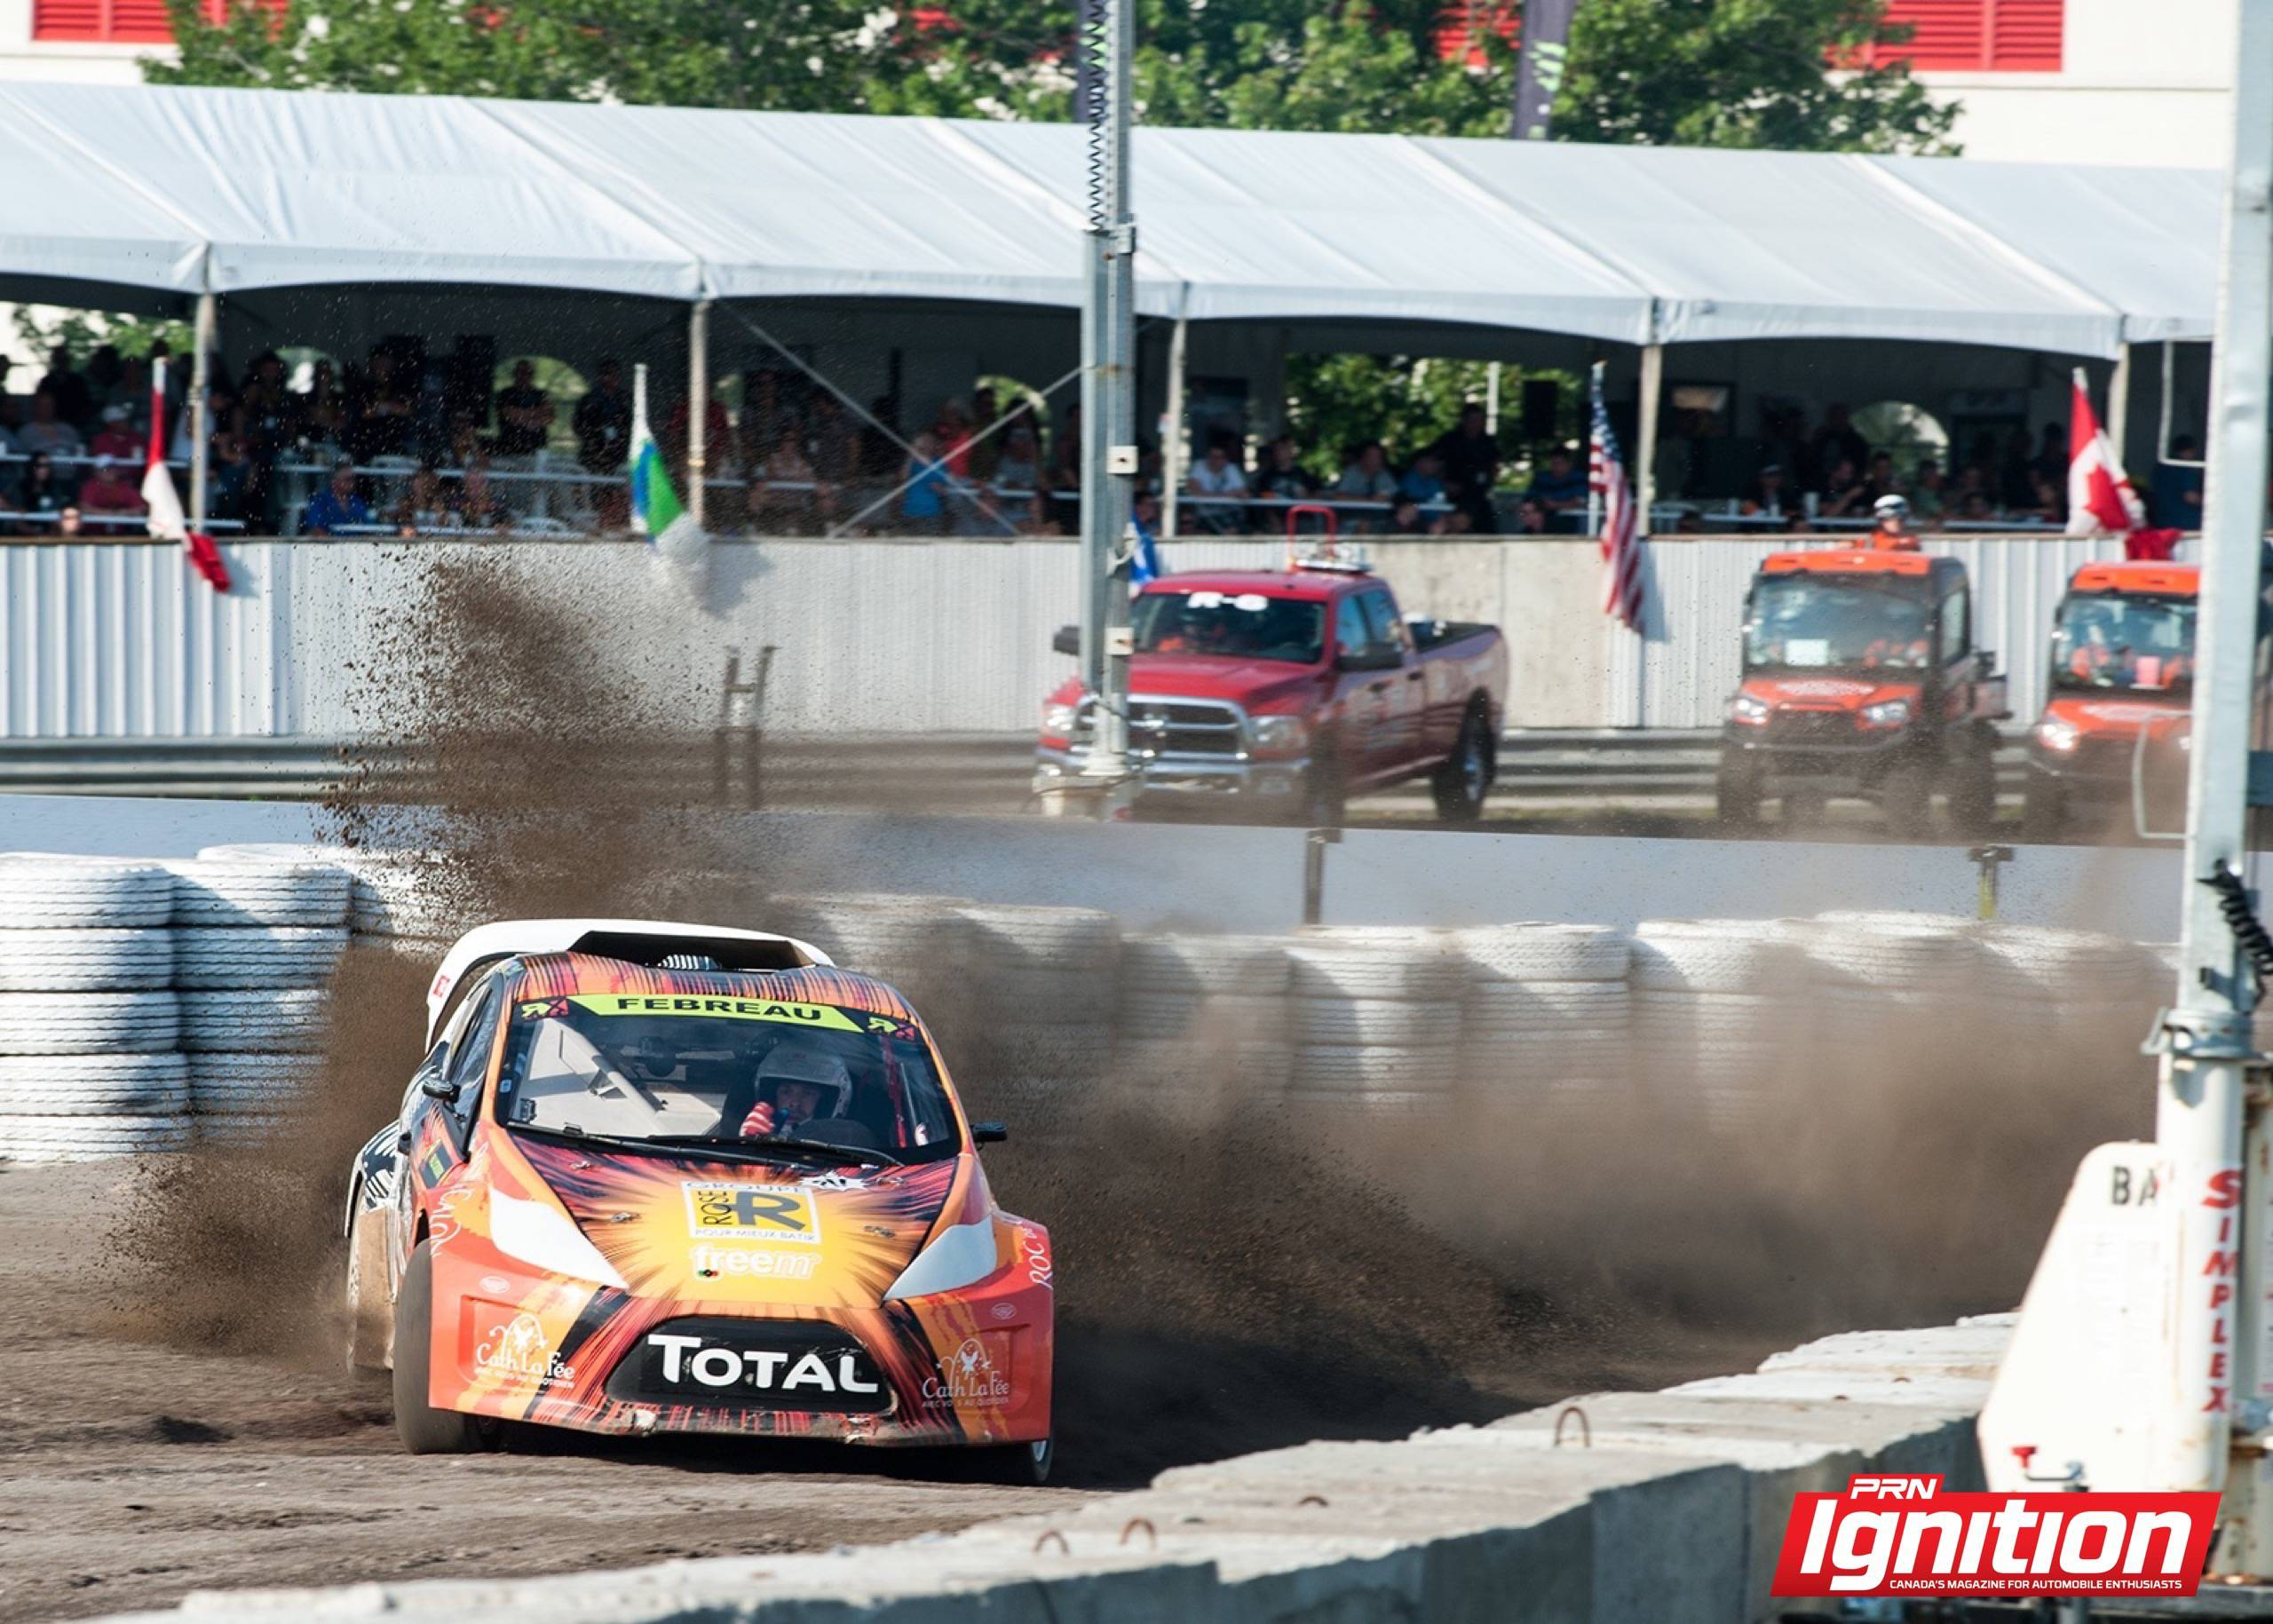 Rally-X Continues Global Assault Ignition 016